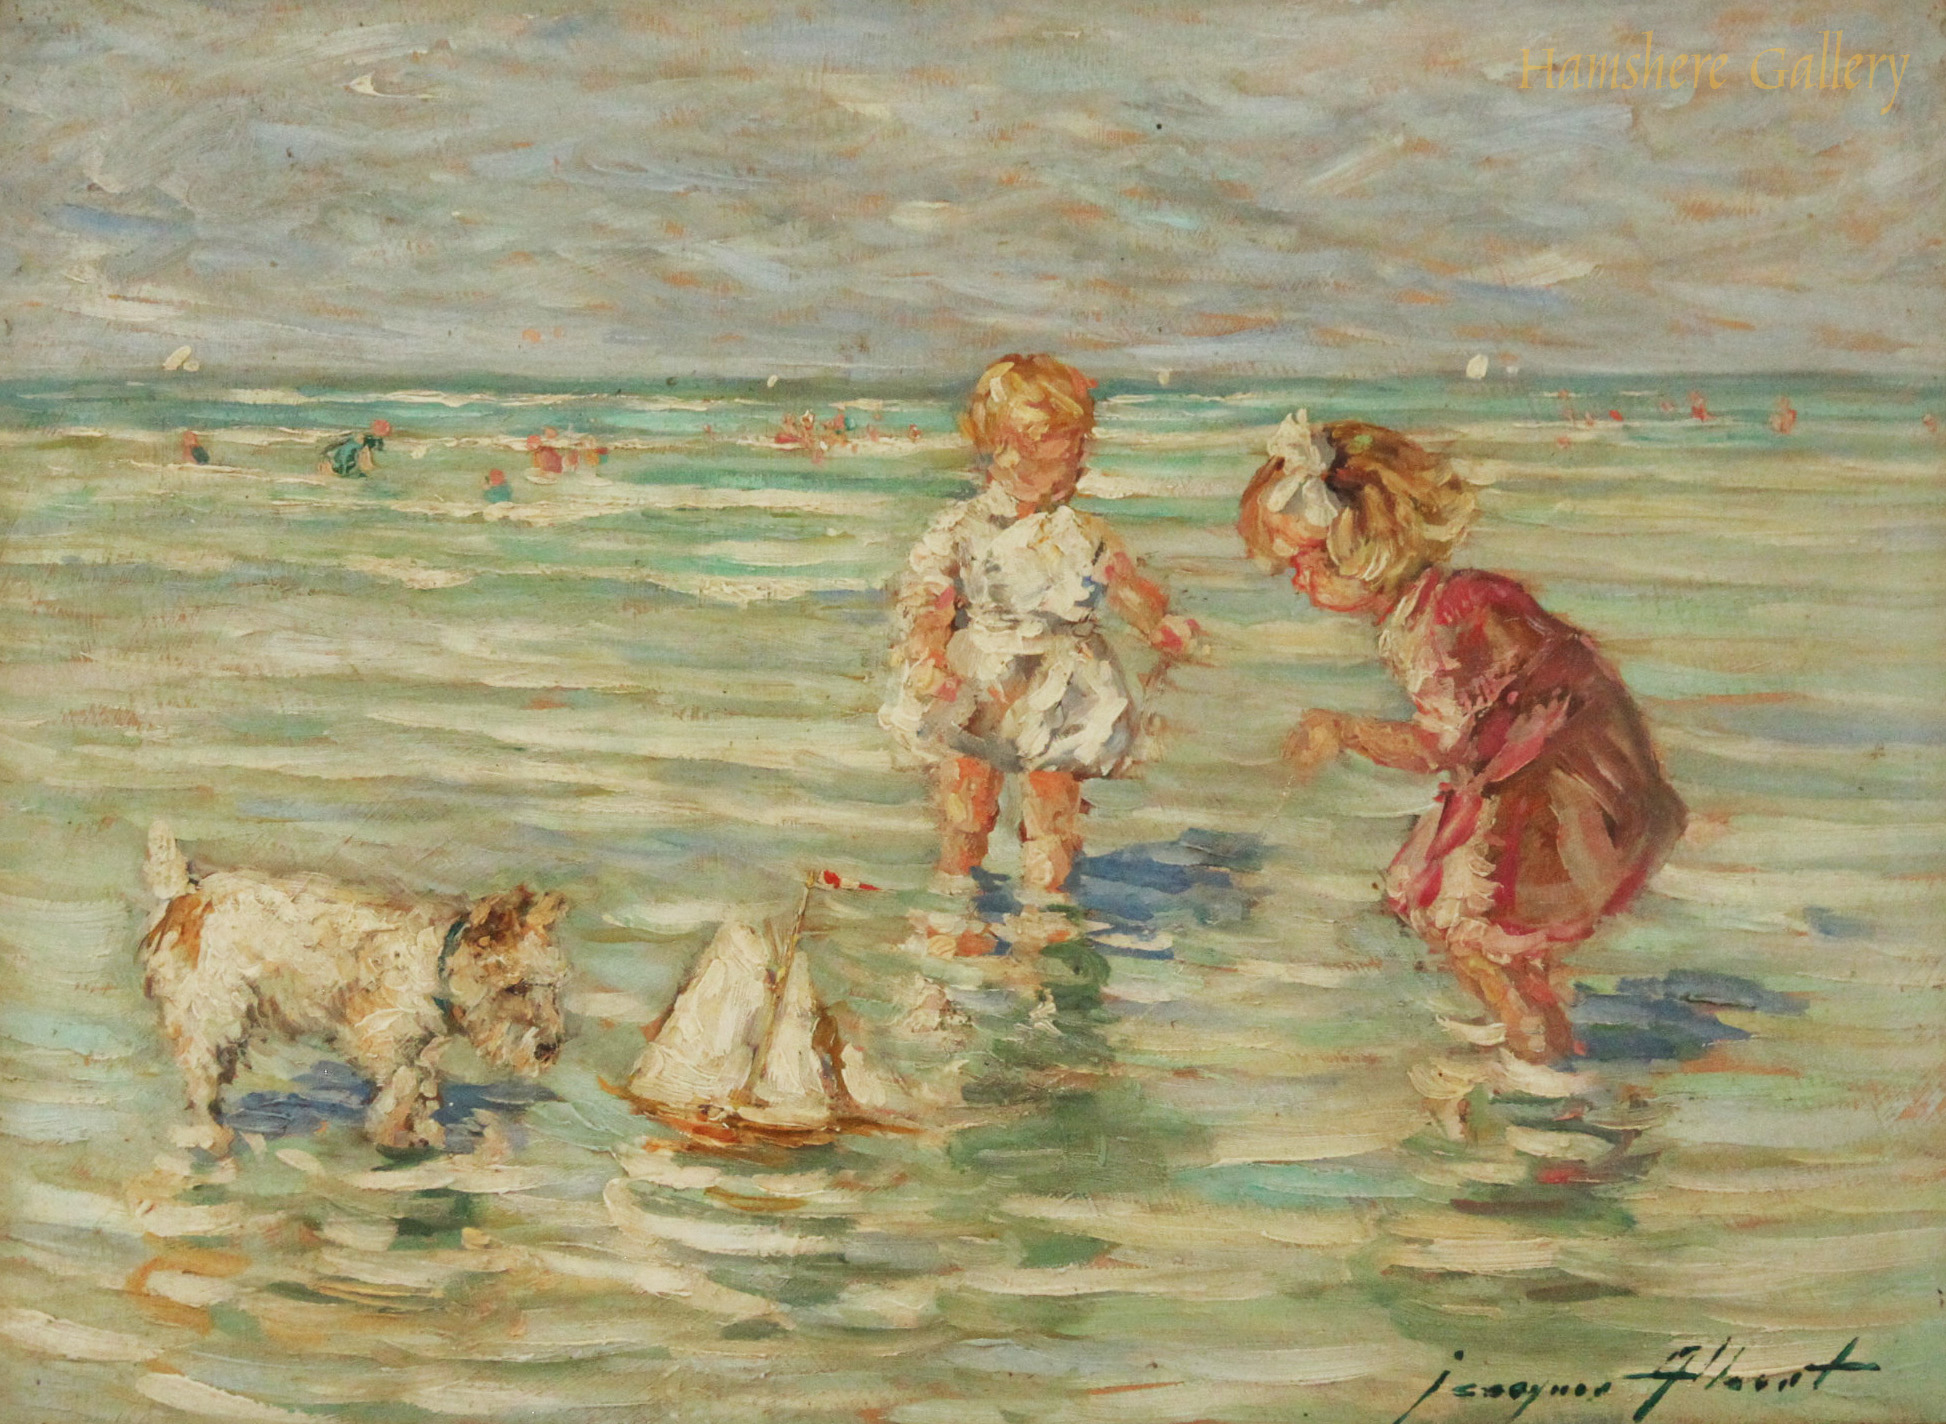 Click to see full size: Oil of Wire-haired Fox Terrier in seaside scene by Jacques Albert